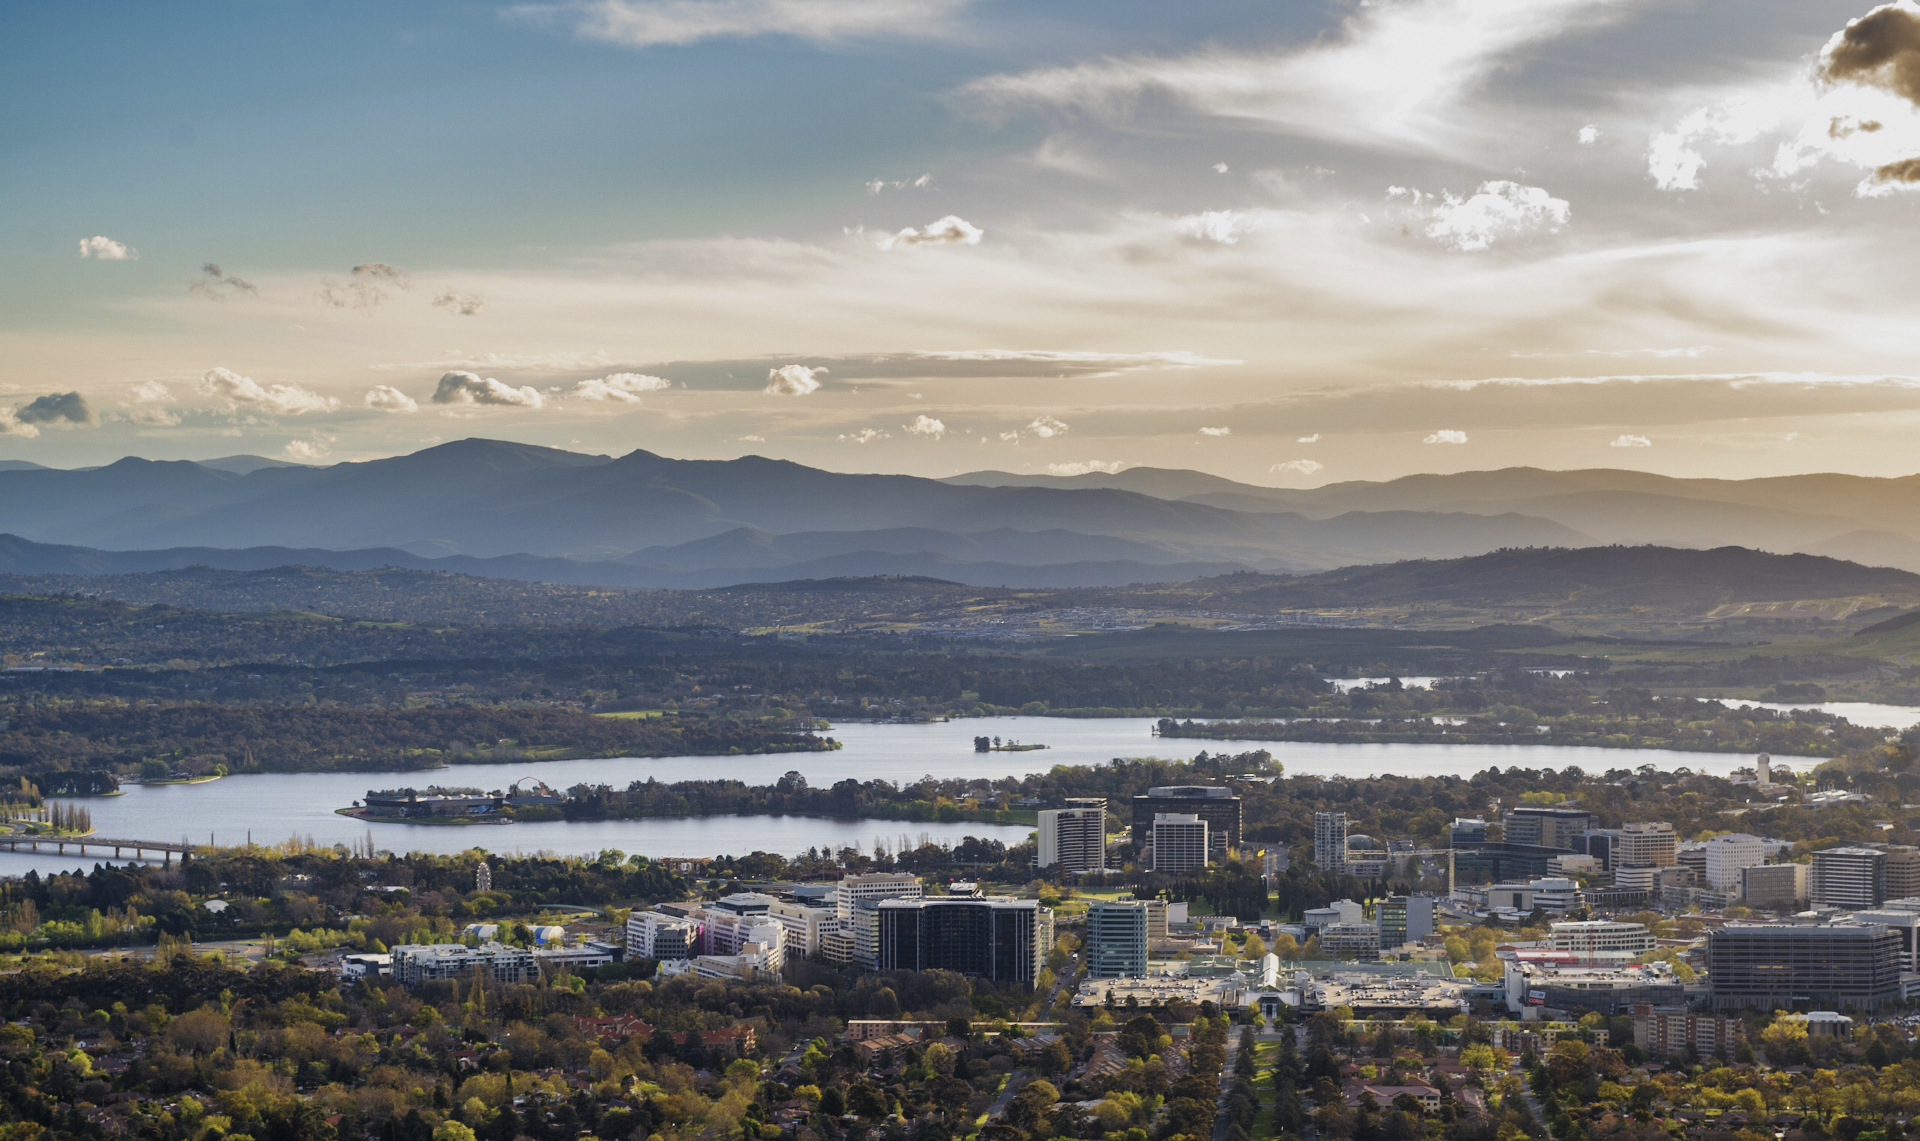 Buildings and roads in Canberra, Australian Capital Territory